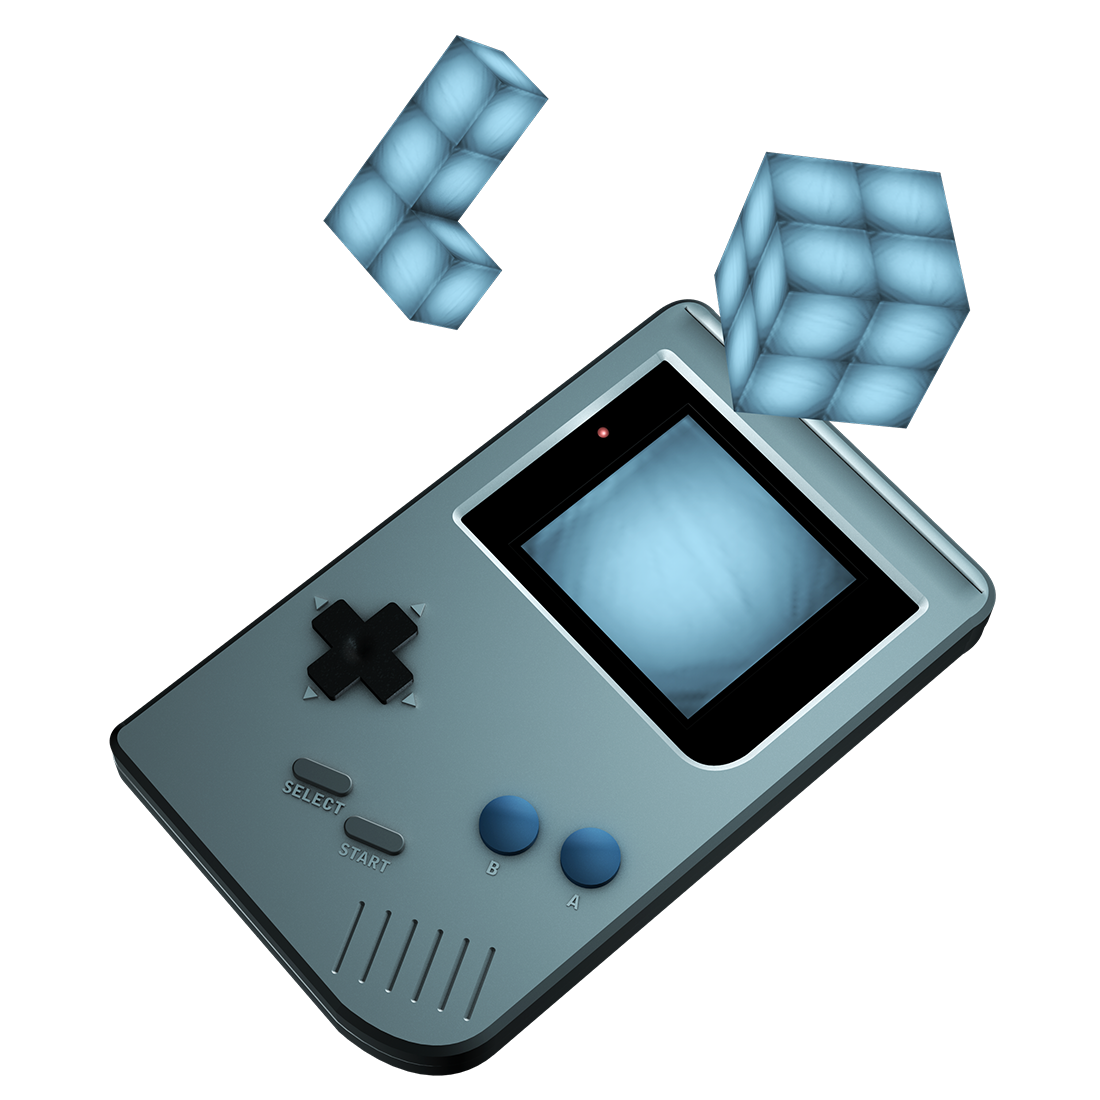 3D Modell eines Game Boys